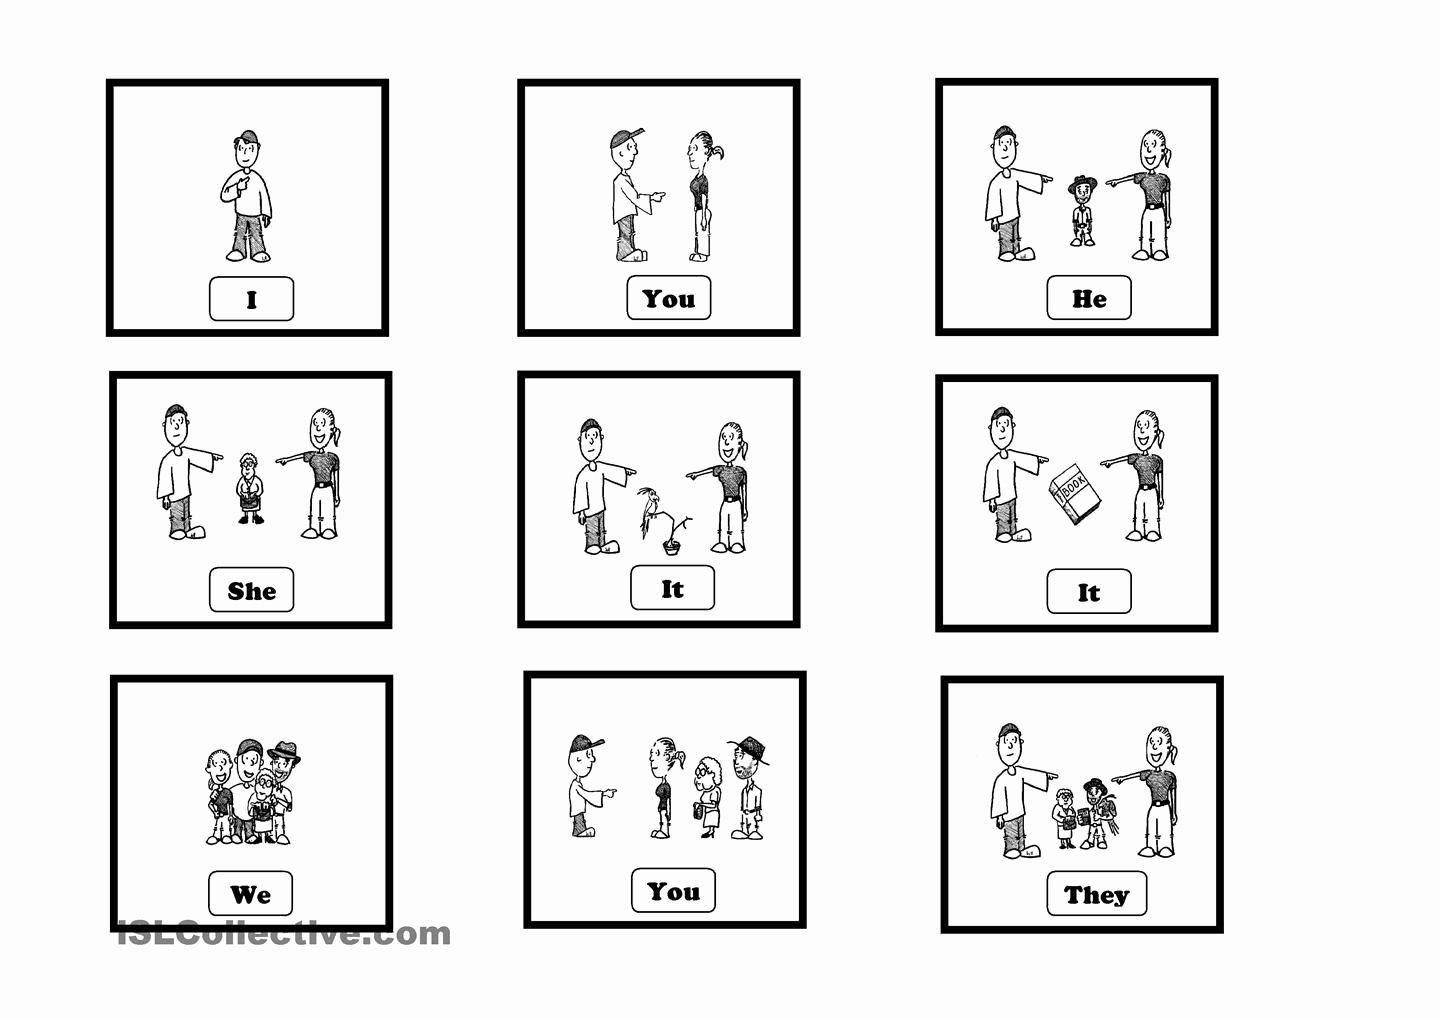 Subject Pronouns Spanish Worksheet Elegant Subject Pronouns Cards Autism